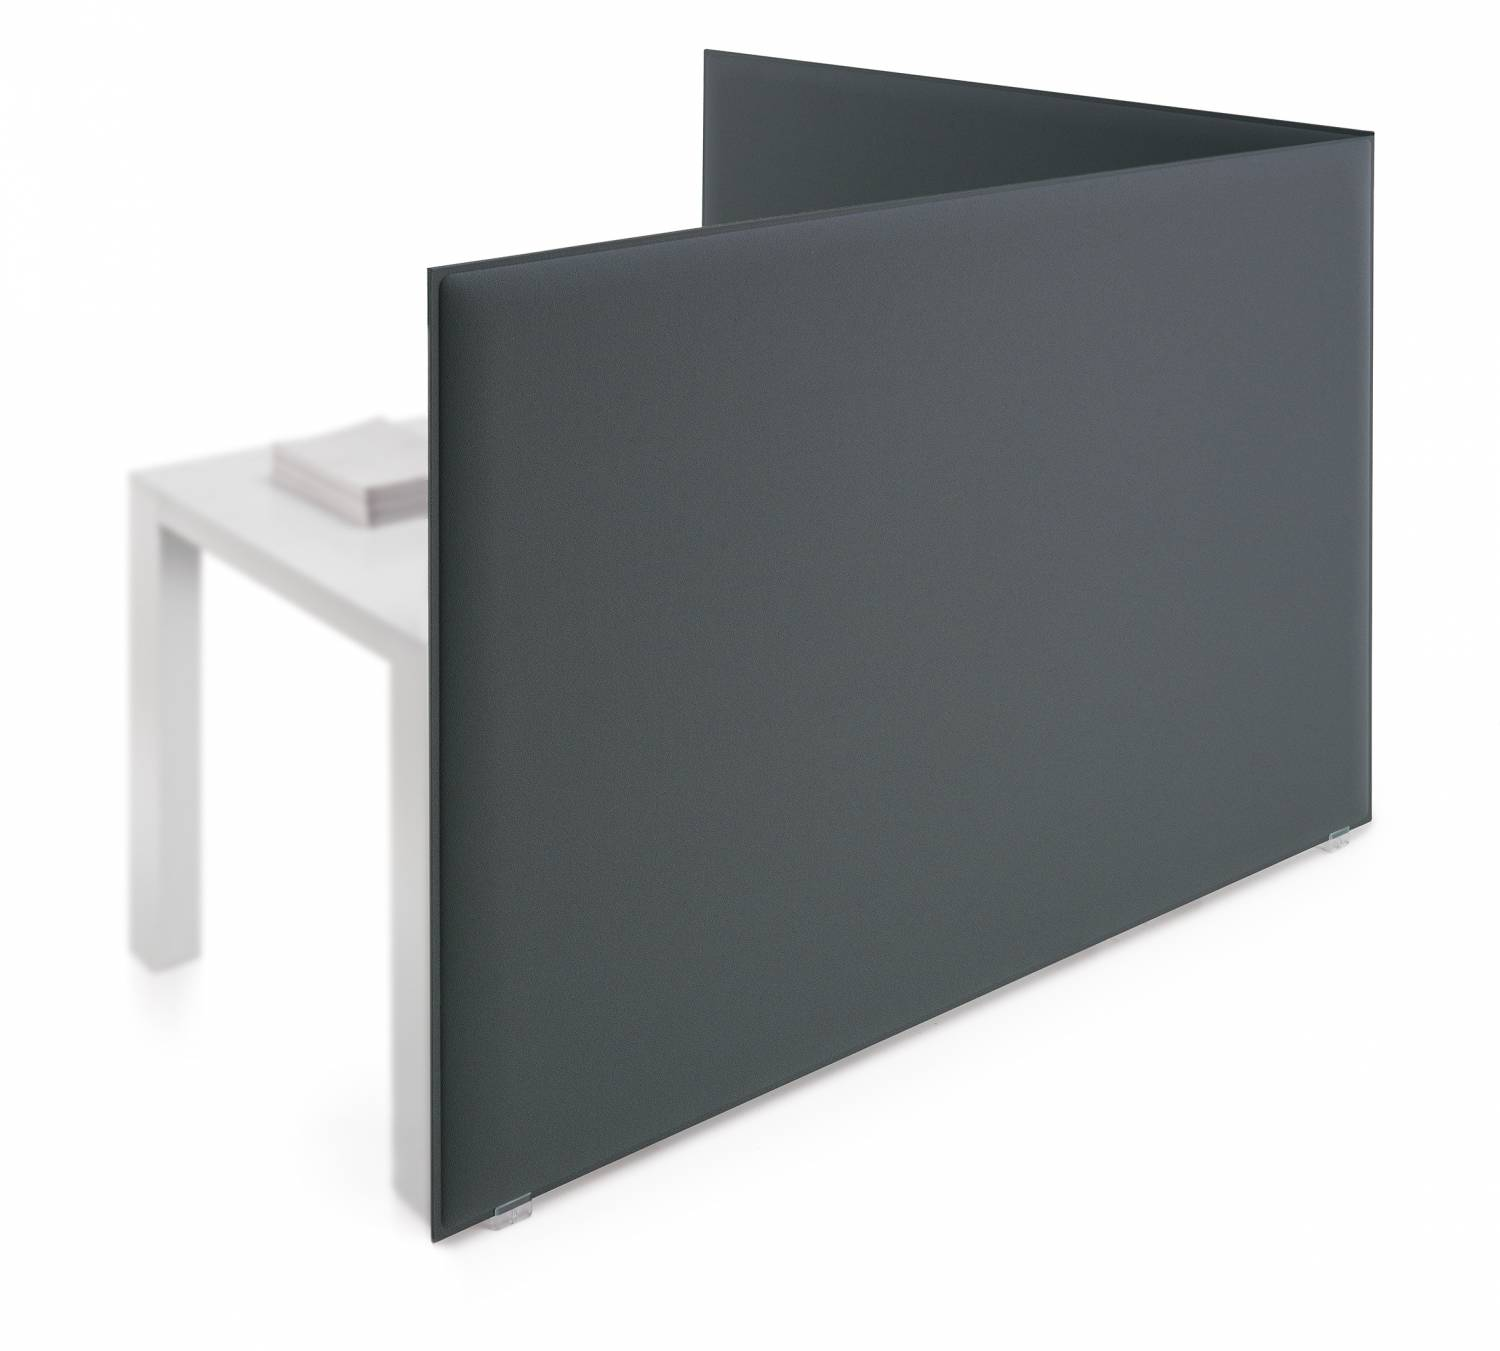 Oversize-Ocee-Sound-Absorbing-Acoustic-Corner-Panel